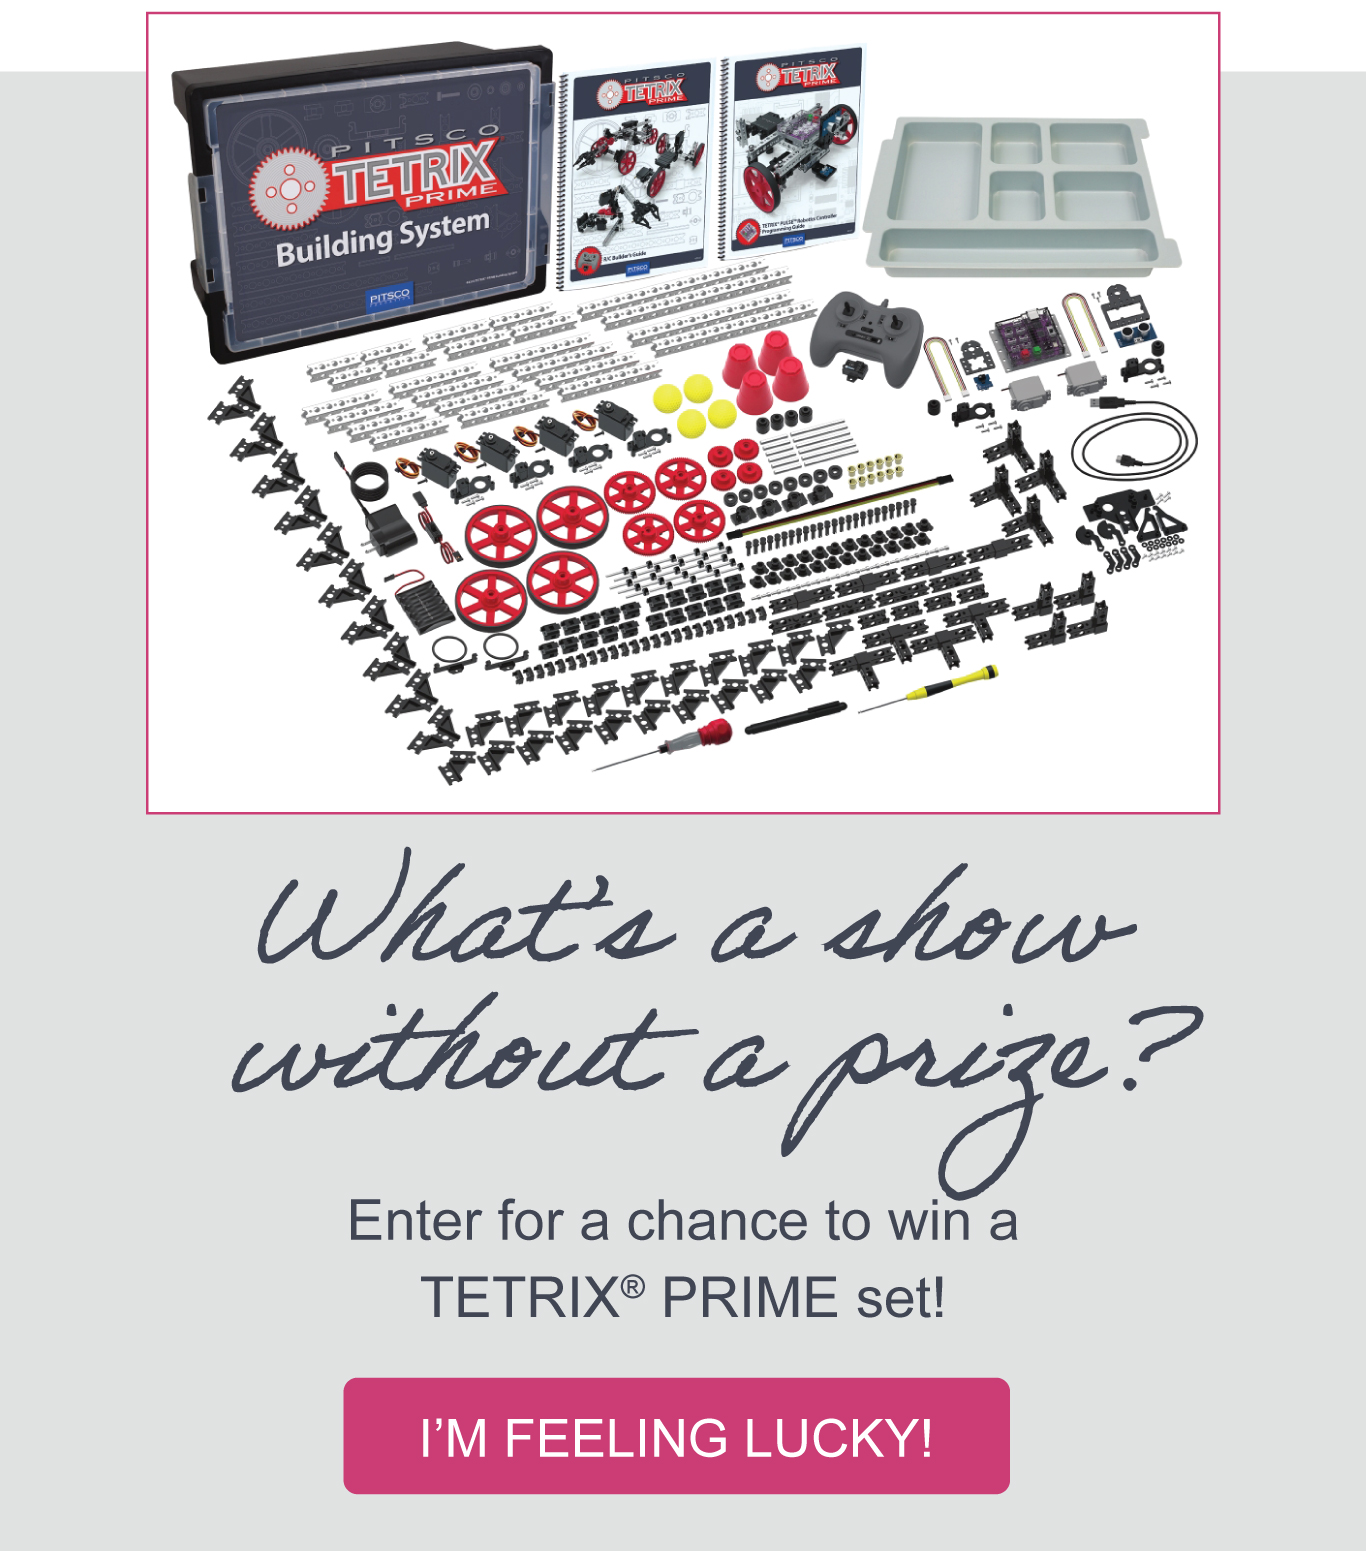 What's a show without a prize? Enter for a chance to win a TETRIX PRIME set! I'M FEELING LUCKY